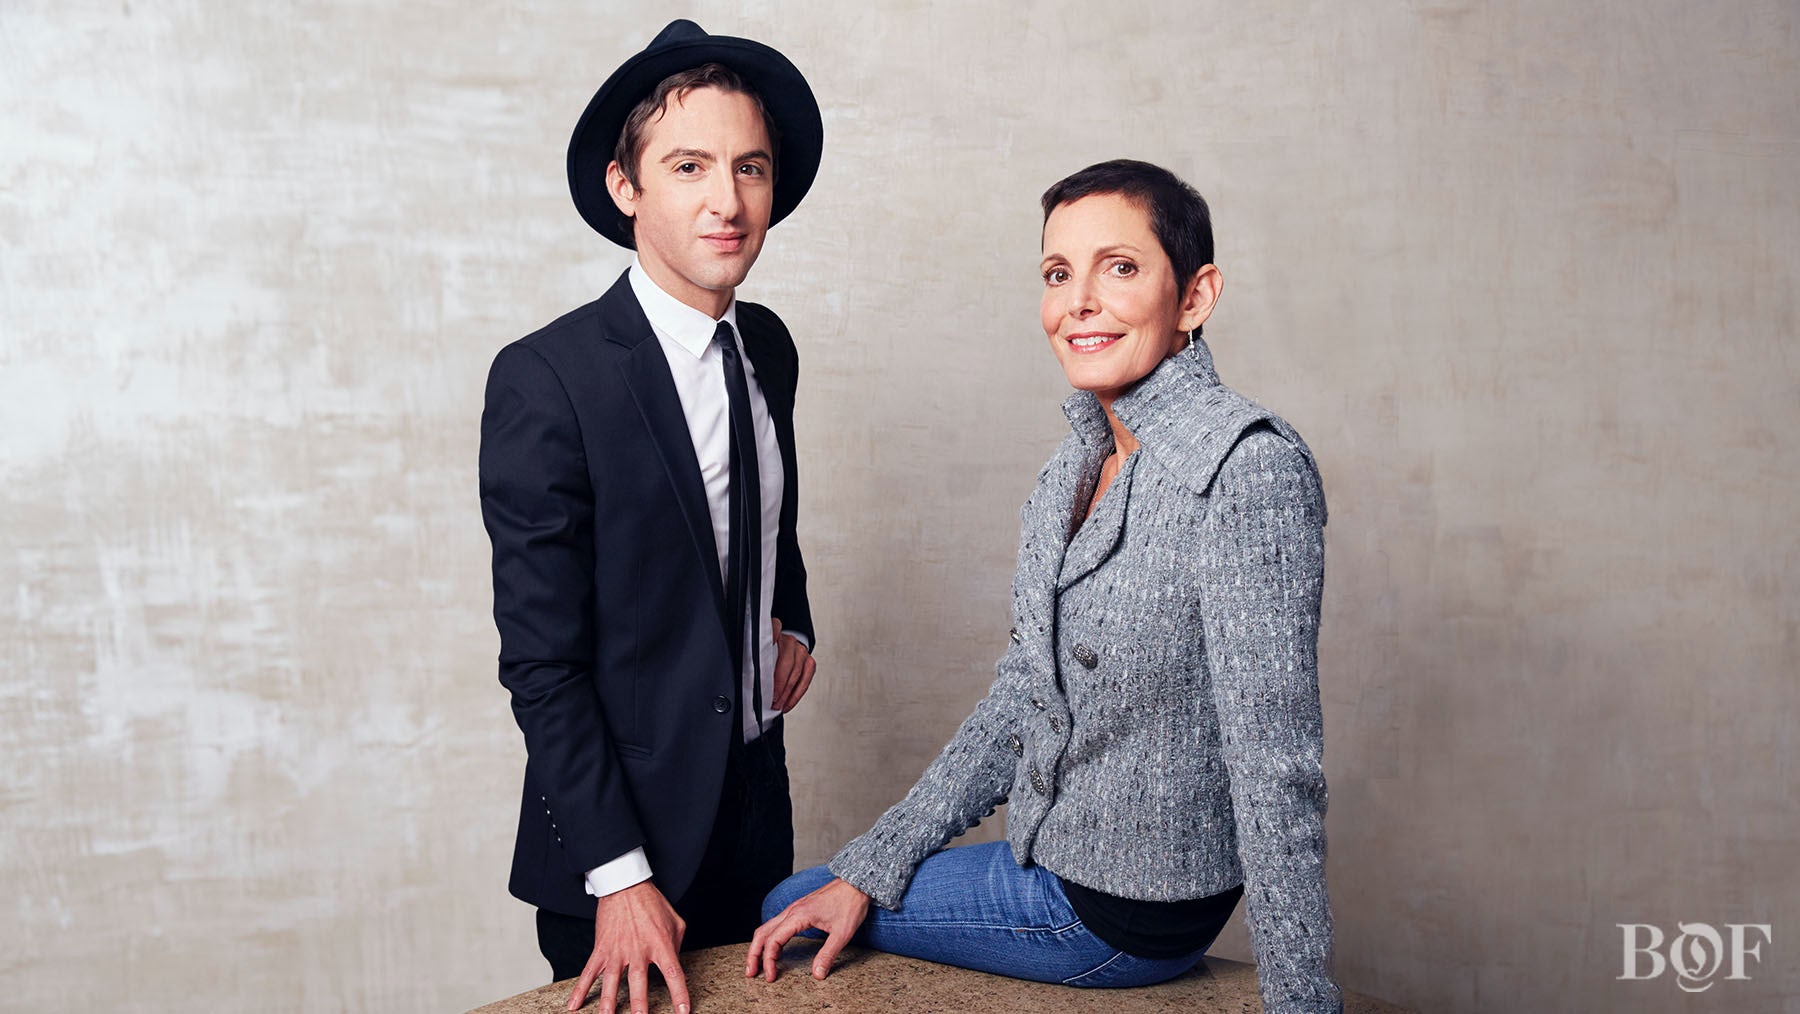 Eddie Borgo and Maureen Chiquet | Photo: Kevin Trageser for BoF